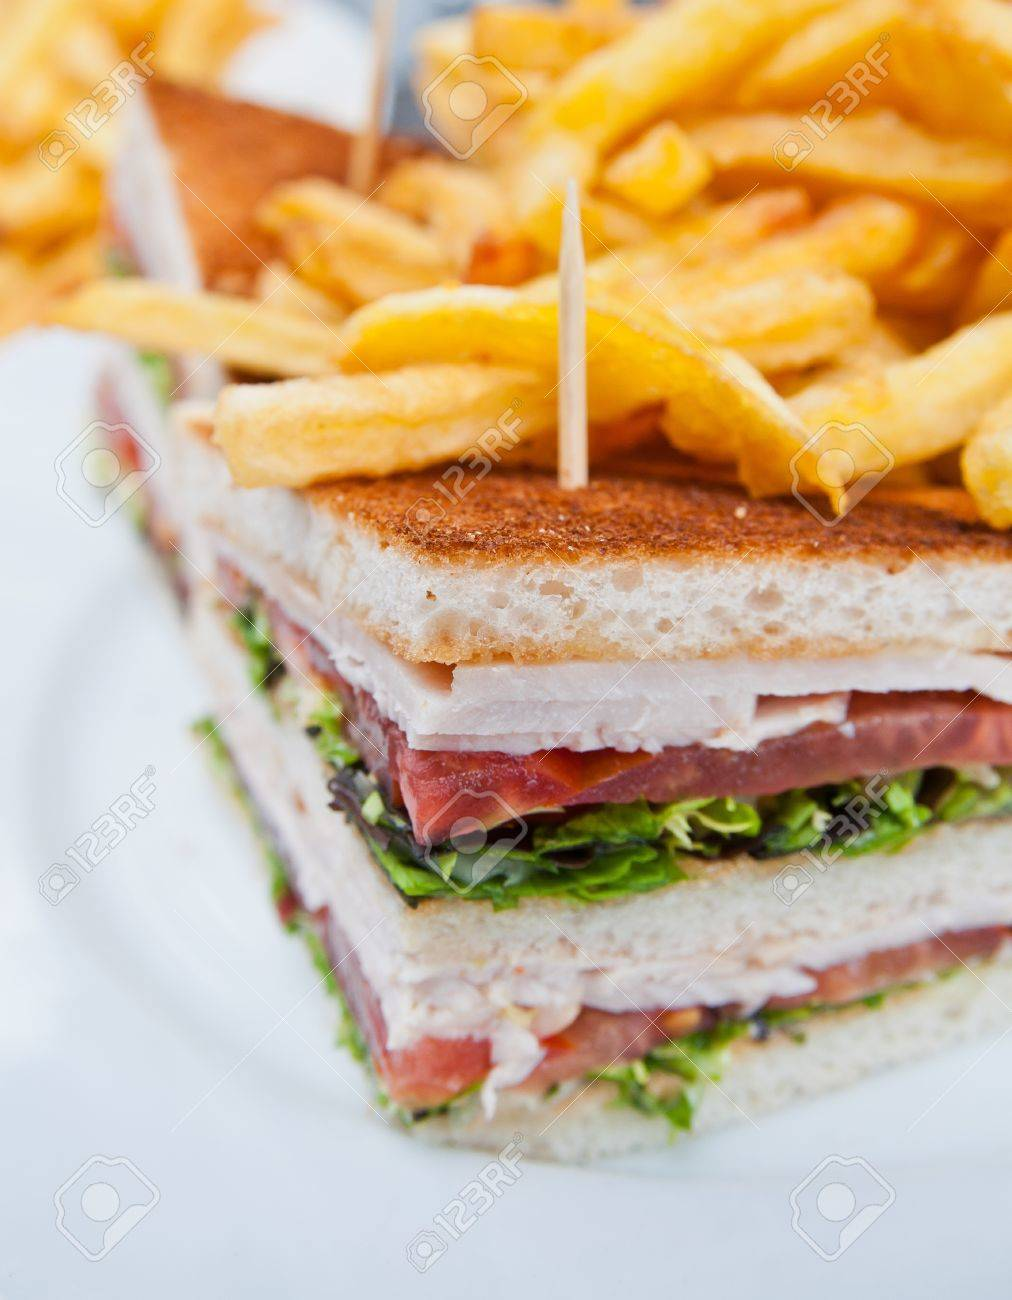 Sandwich with chicken, cheese and golden French fries potatoes Stock Photo - 11178170